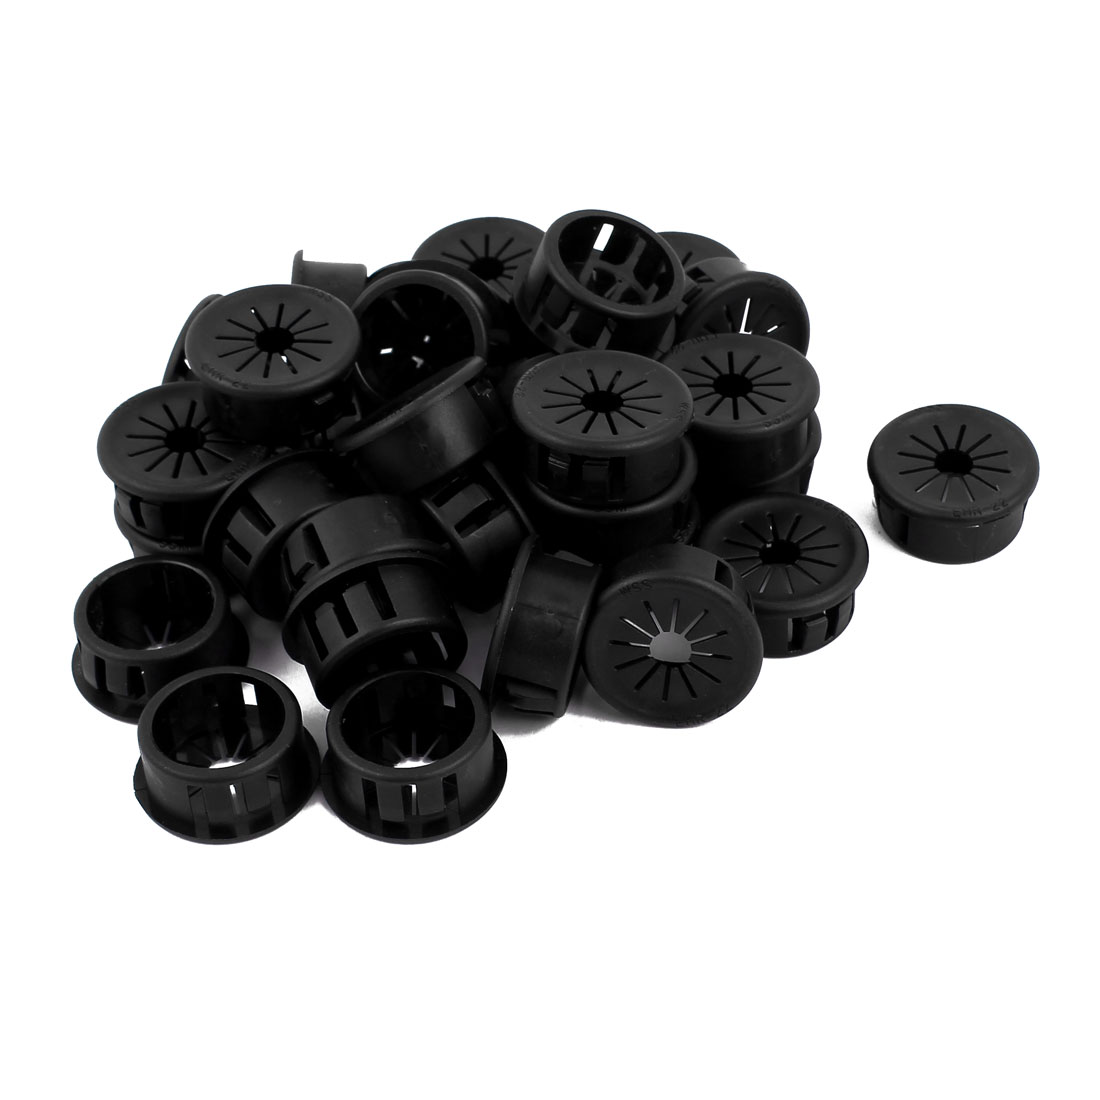 Cable Snap Locking Bushing Protector Harness Grommet Black 32 Pcs